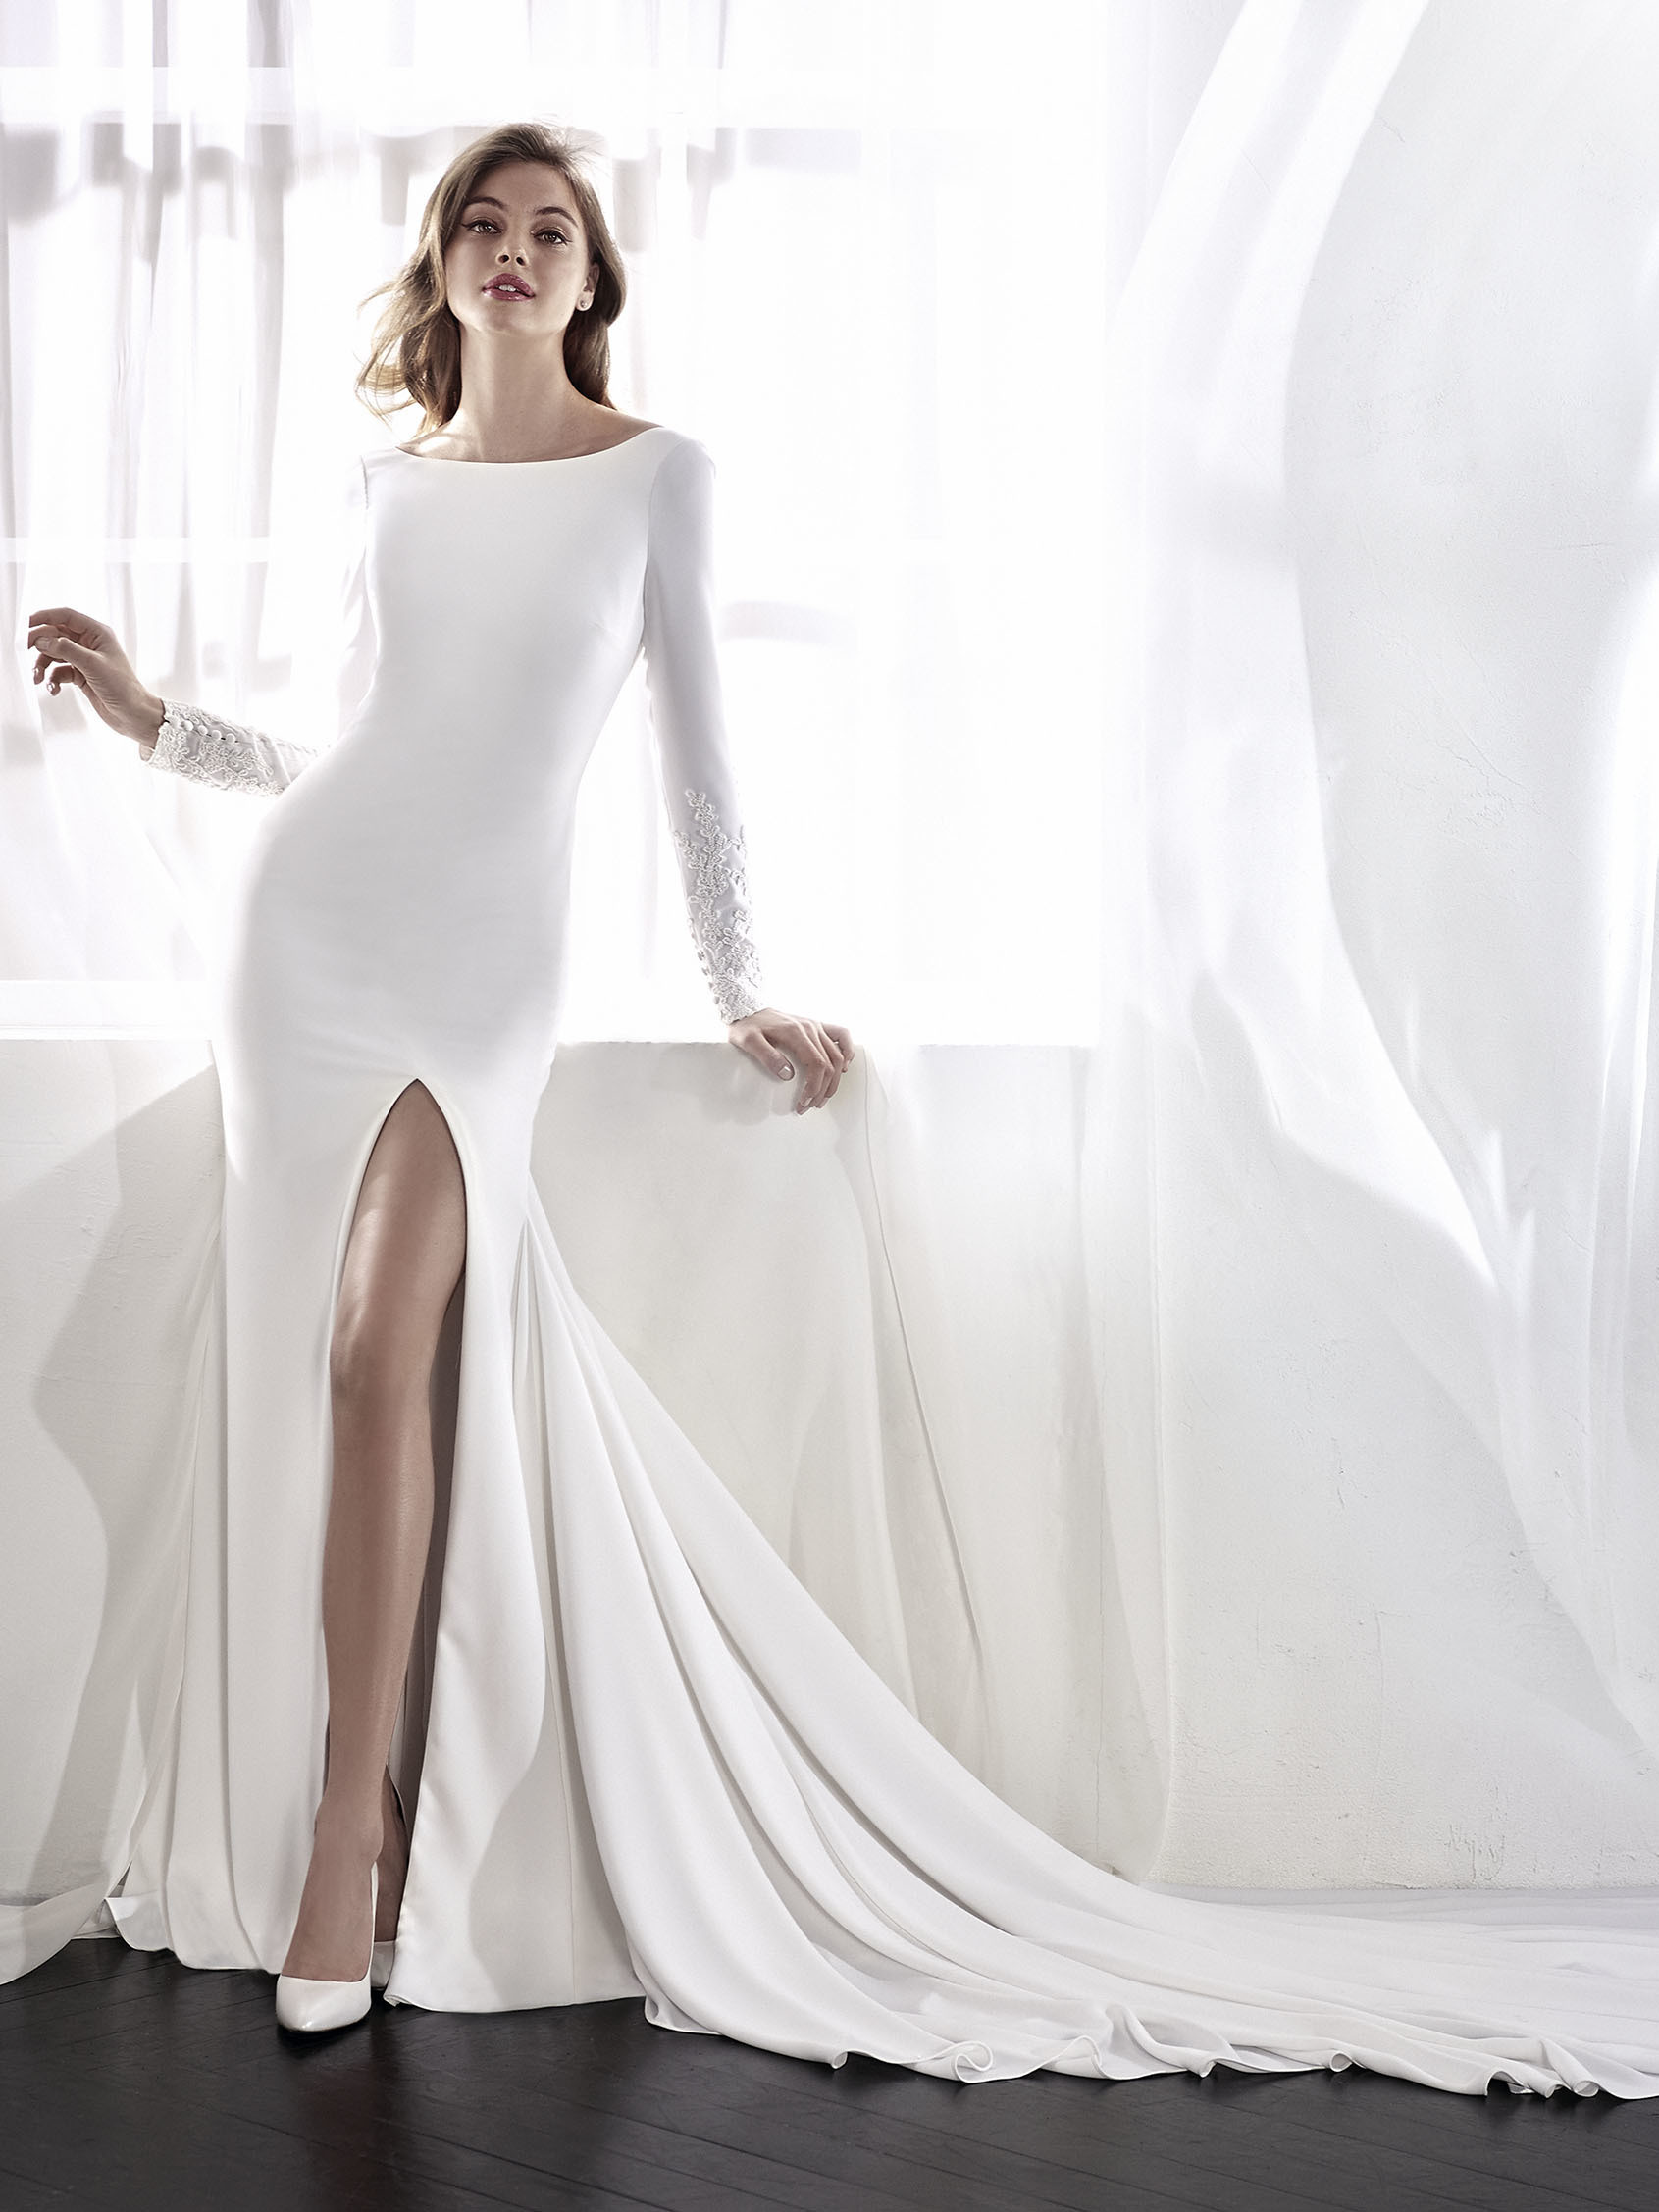 17 Chic, Minimal Wedding Dresses for Modern Brides ...